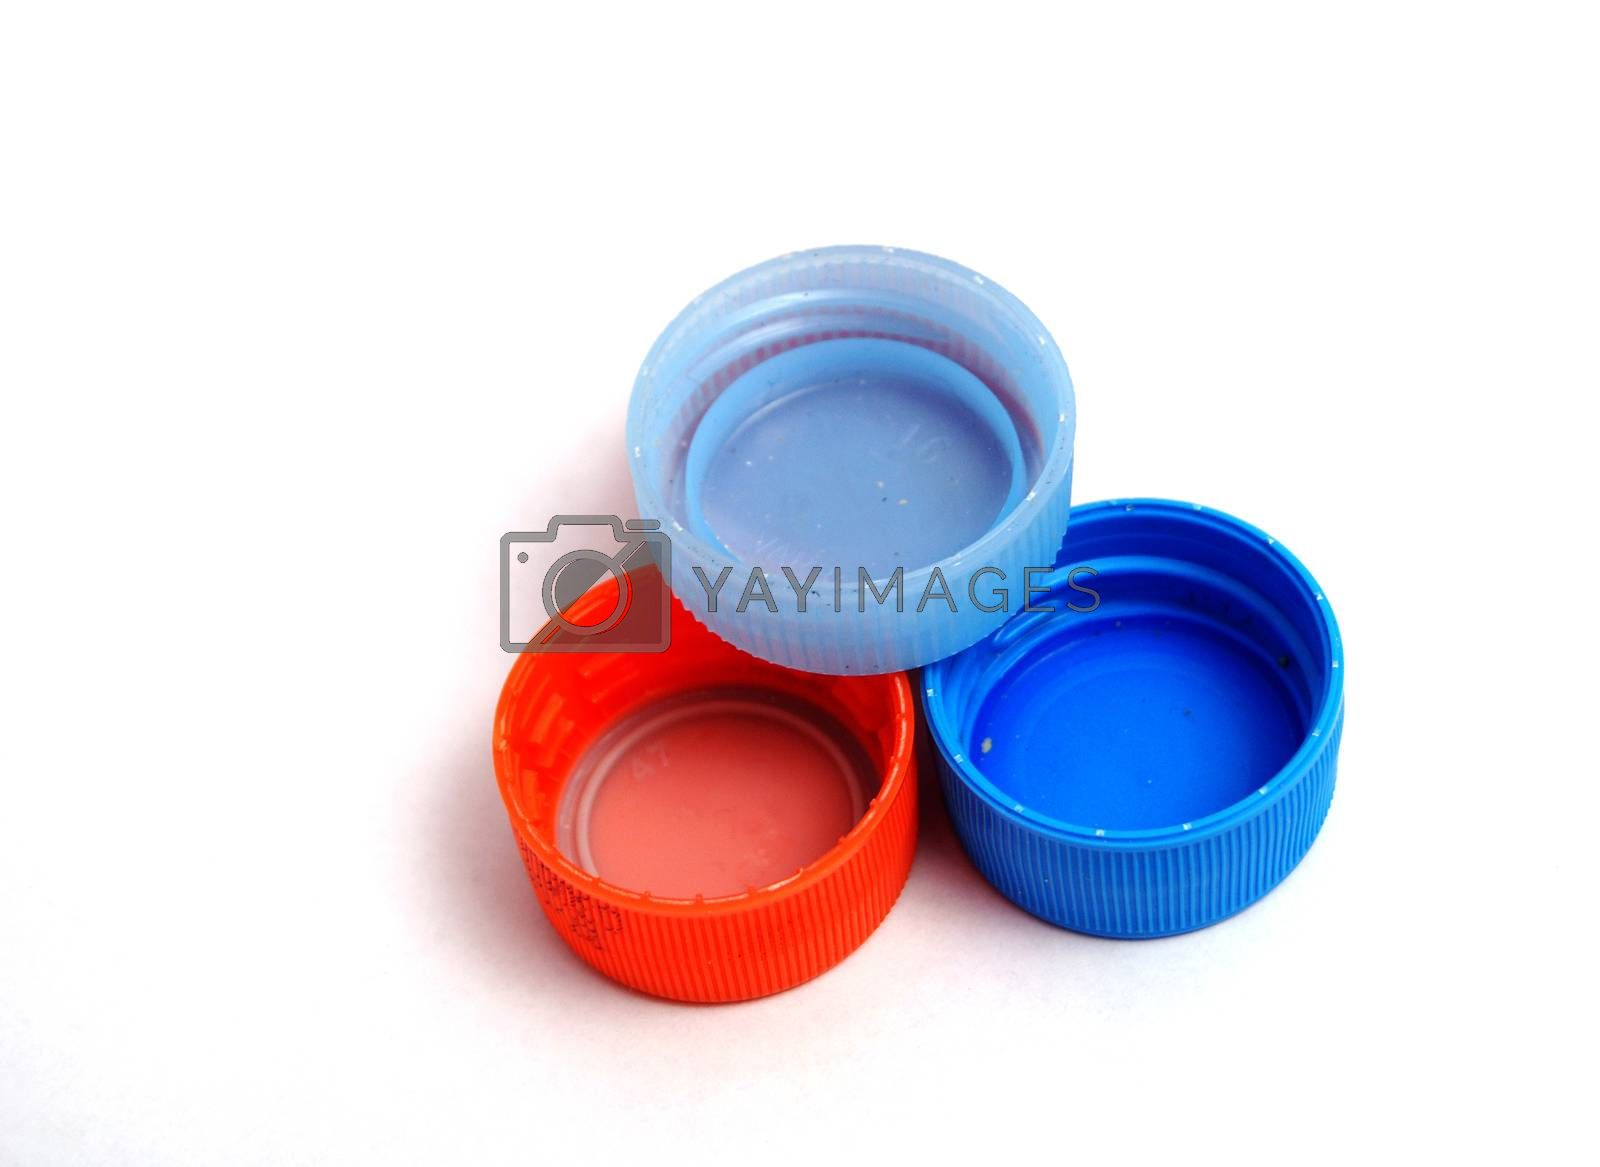 Royalty free image of Plastic bottle caps on white background. selective focus by nehru